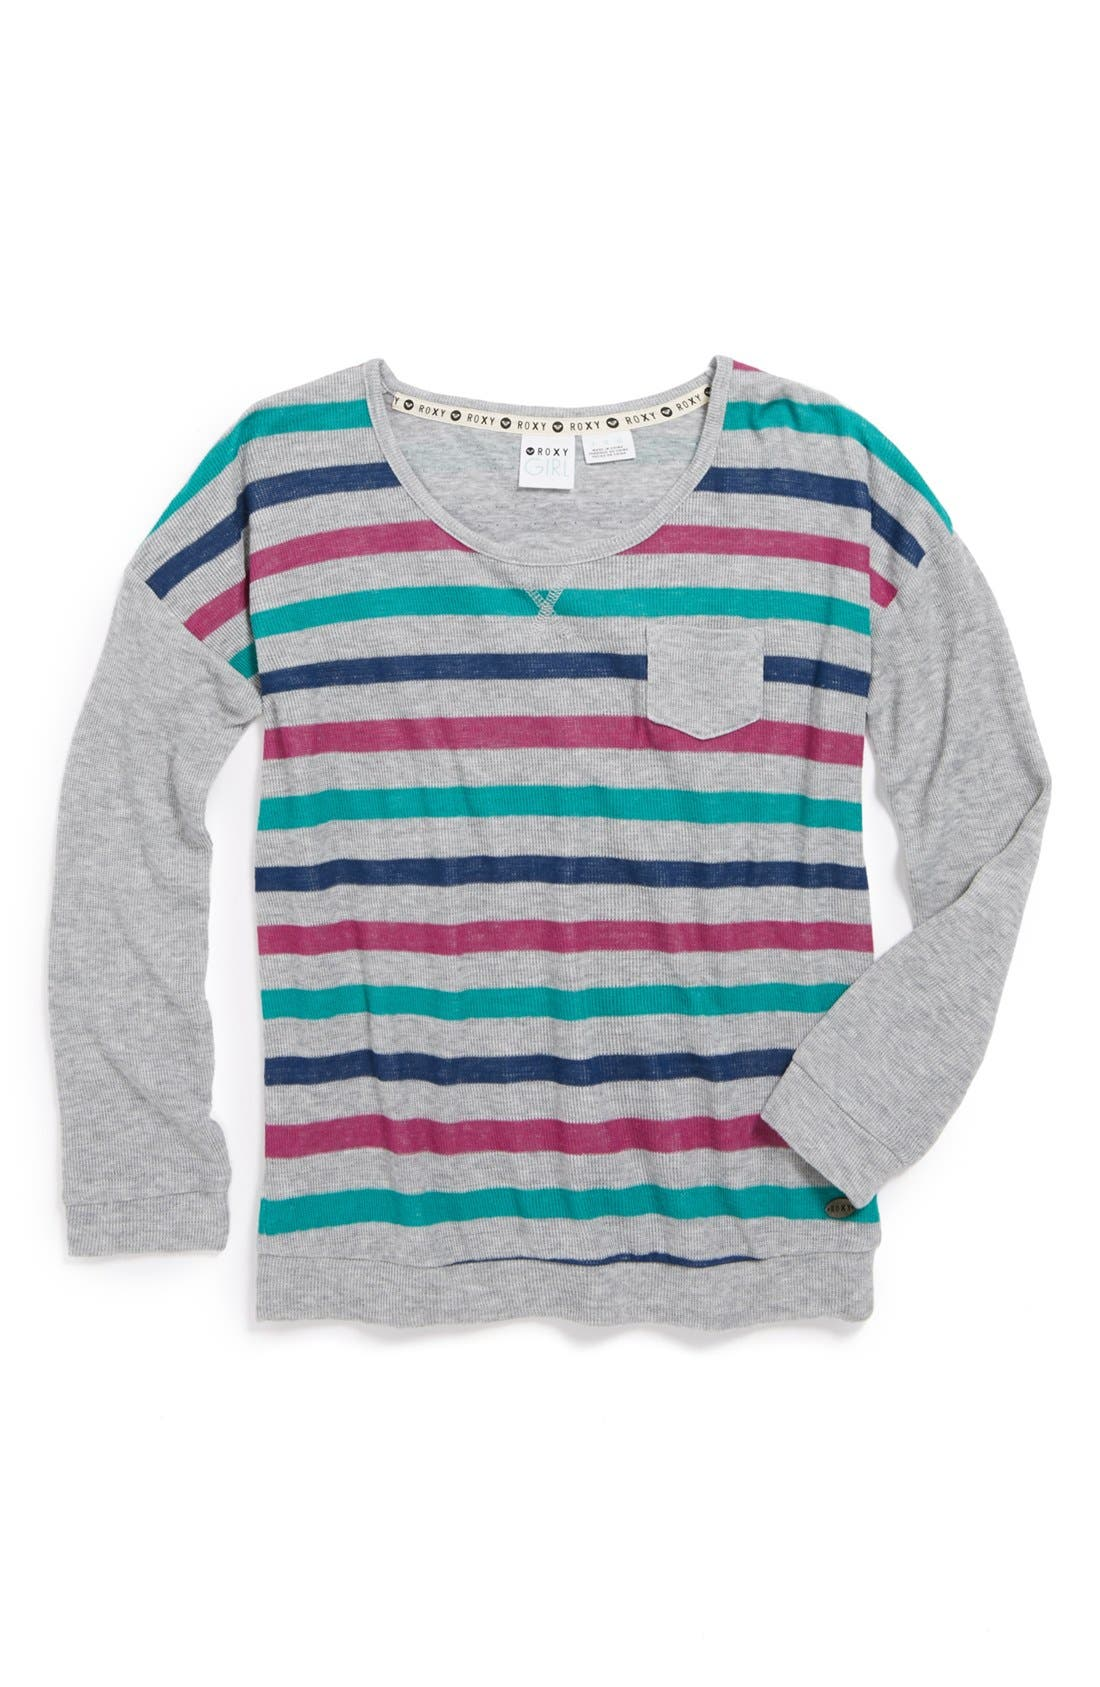 Alternate Image 1 Selected - Roxy 'Revival' Long Sleeve Tee (Big Girls)